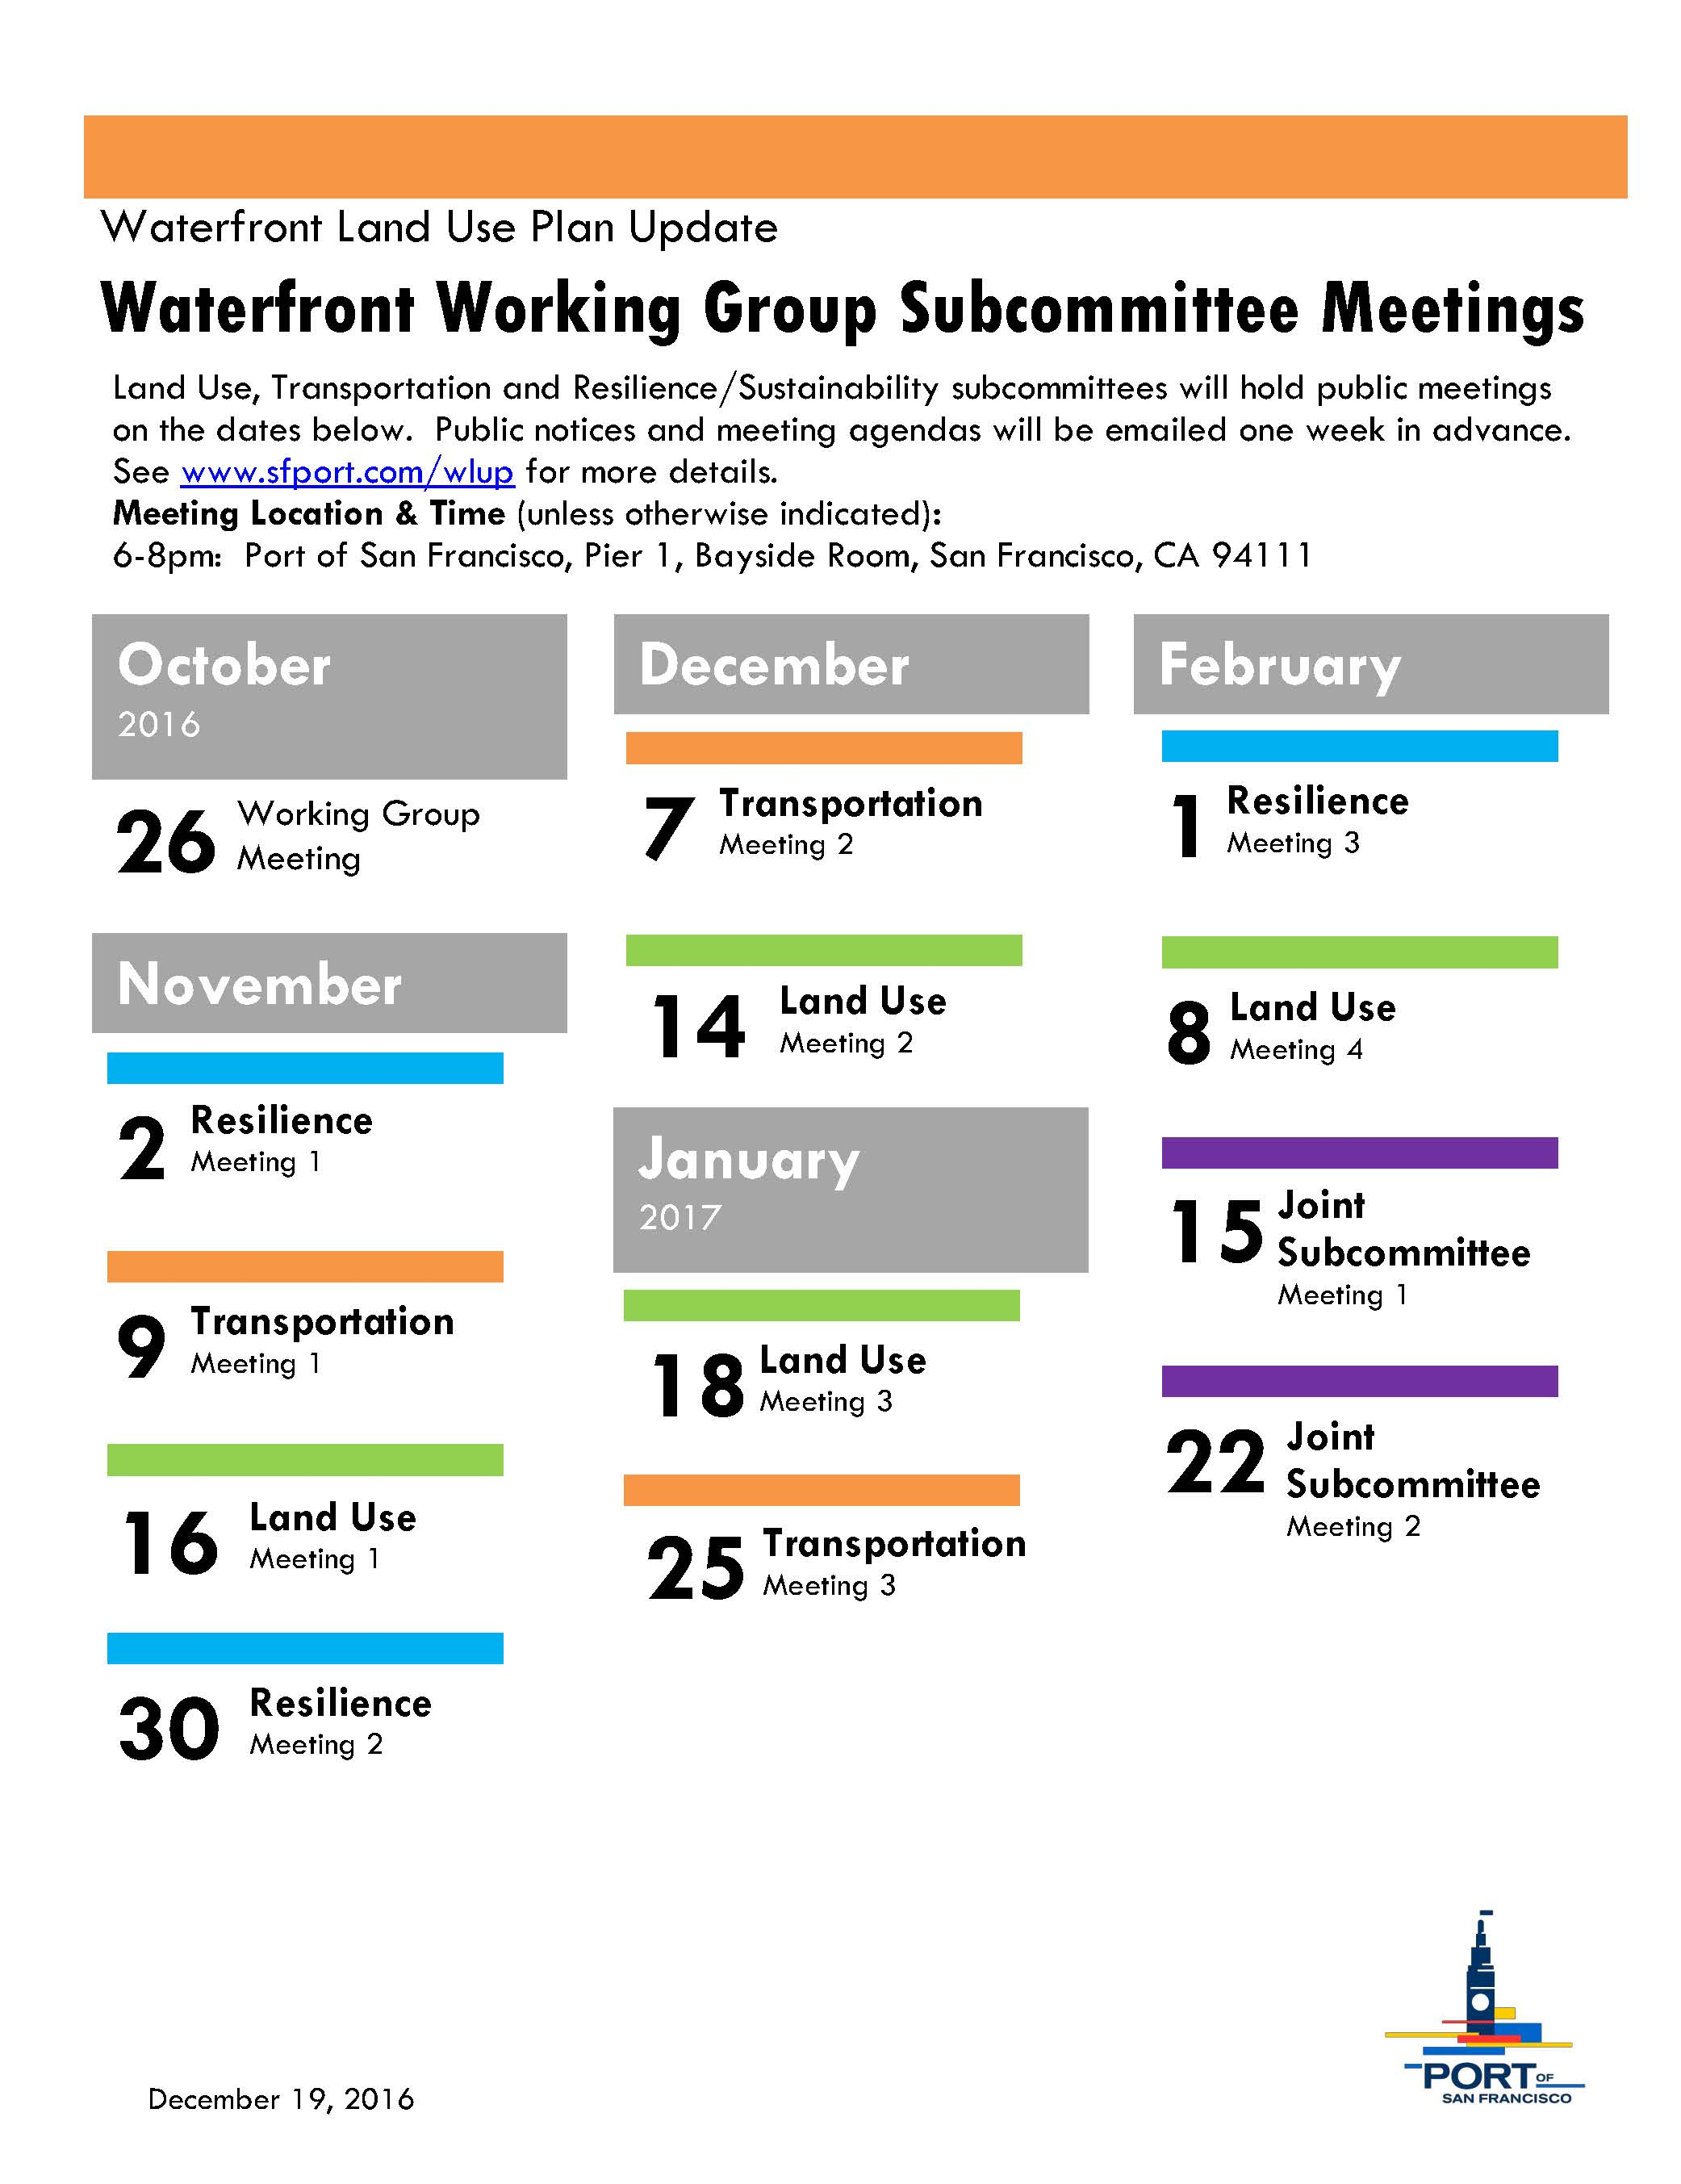 Waterfront Plan Update Part 2 Schedule